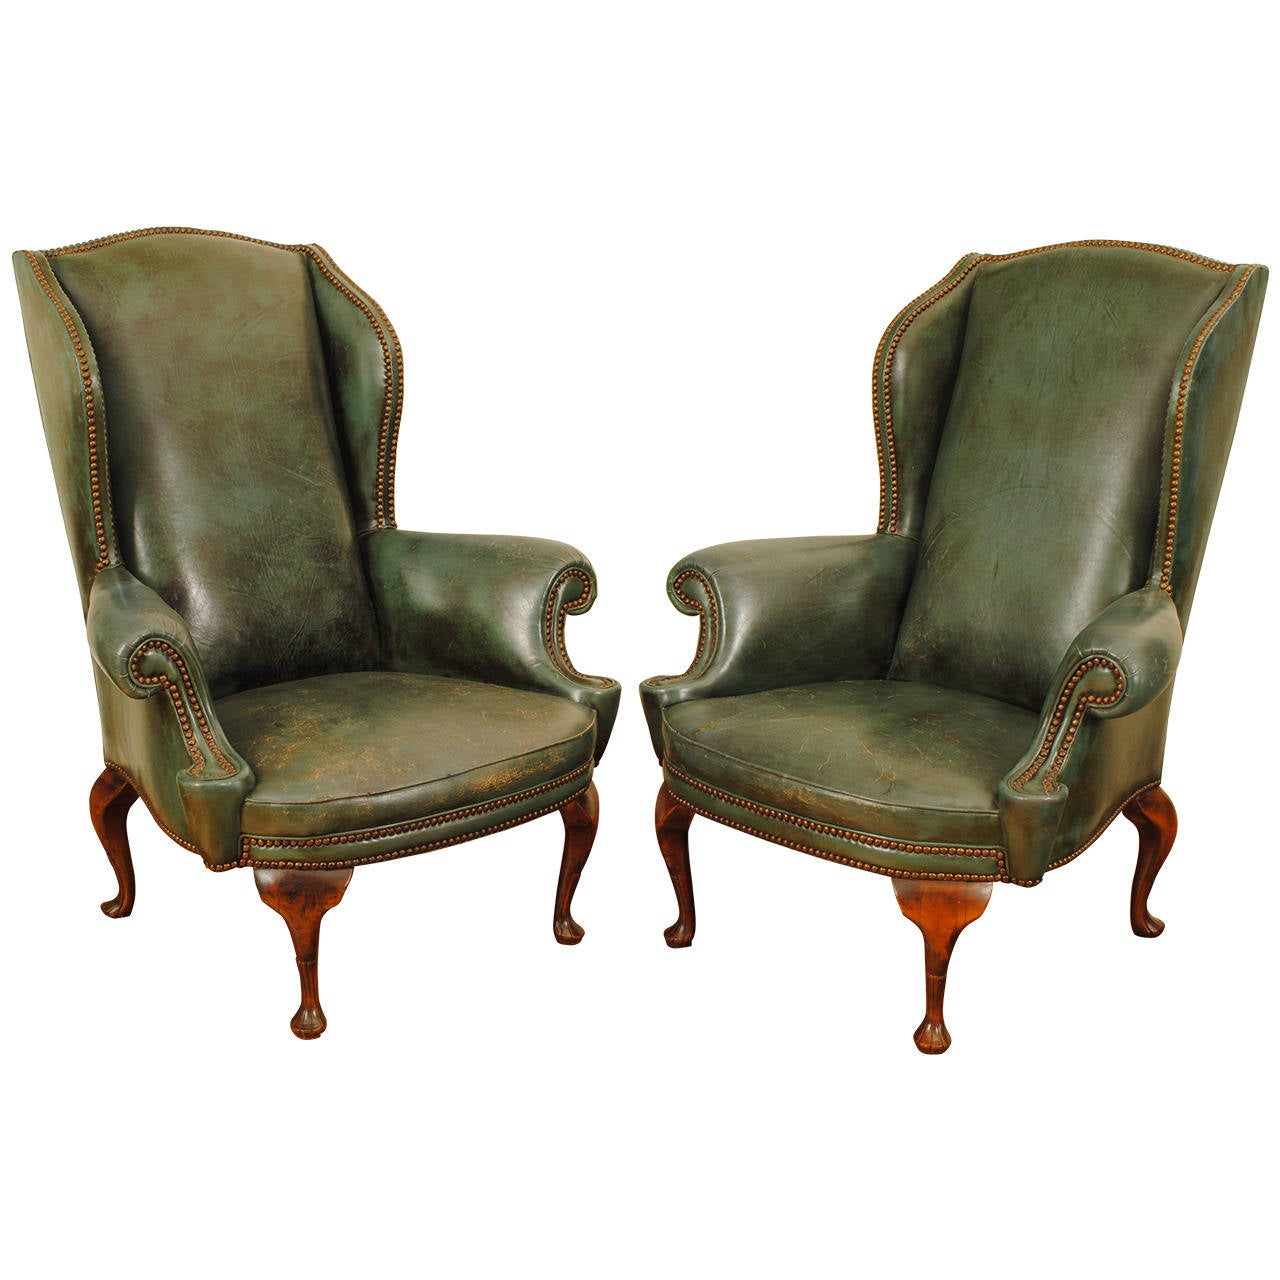 Pair Of Italian Queen Anne Style Walnut And Leather